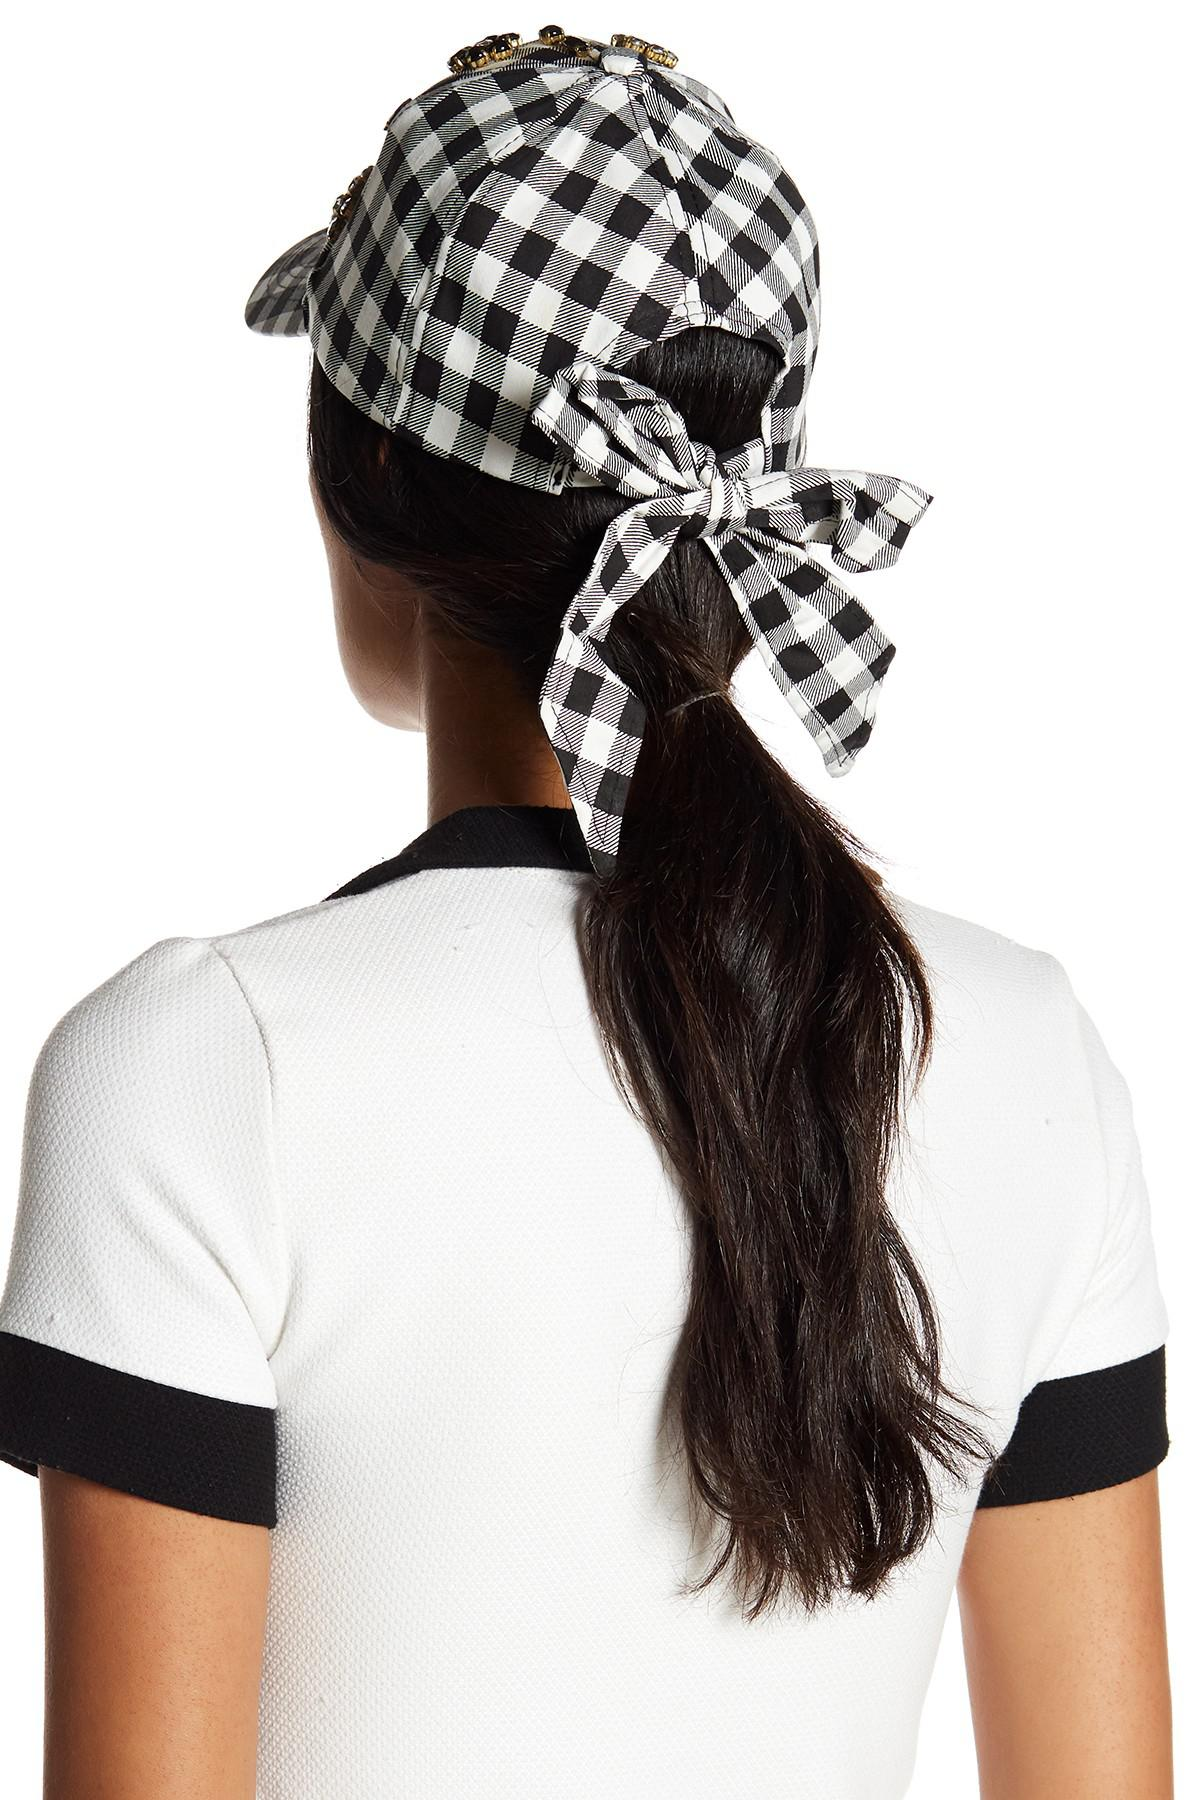 Lyst - Betsey Johnson Buffalo Check Baseball Hat in Black bfc9050ac0bc